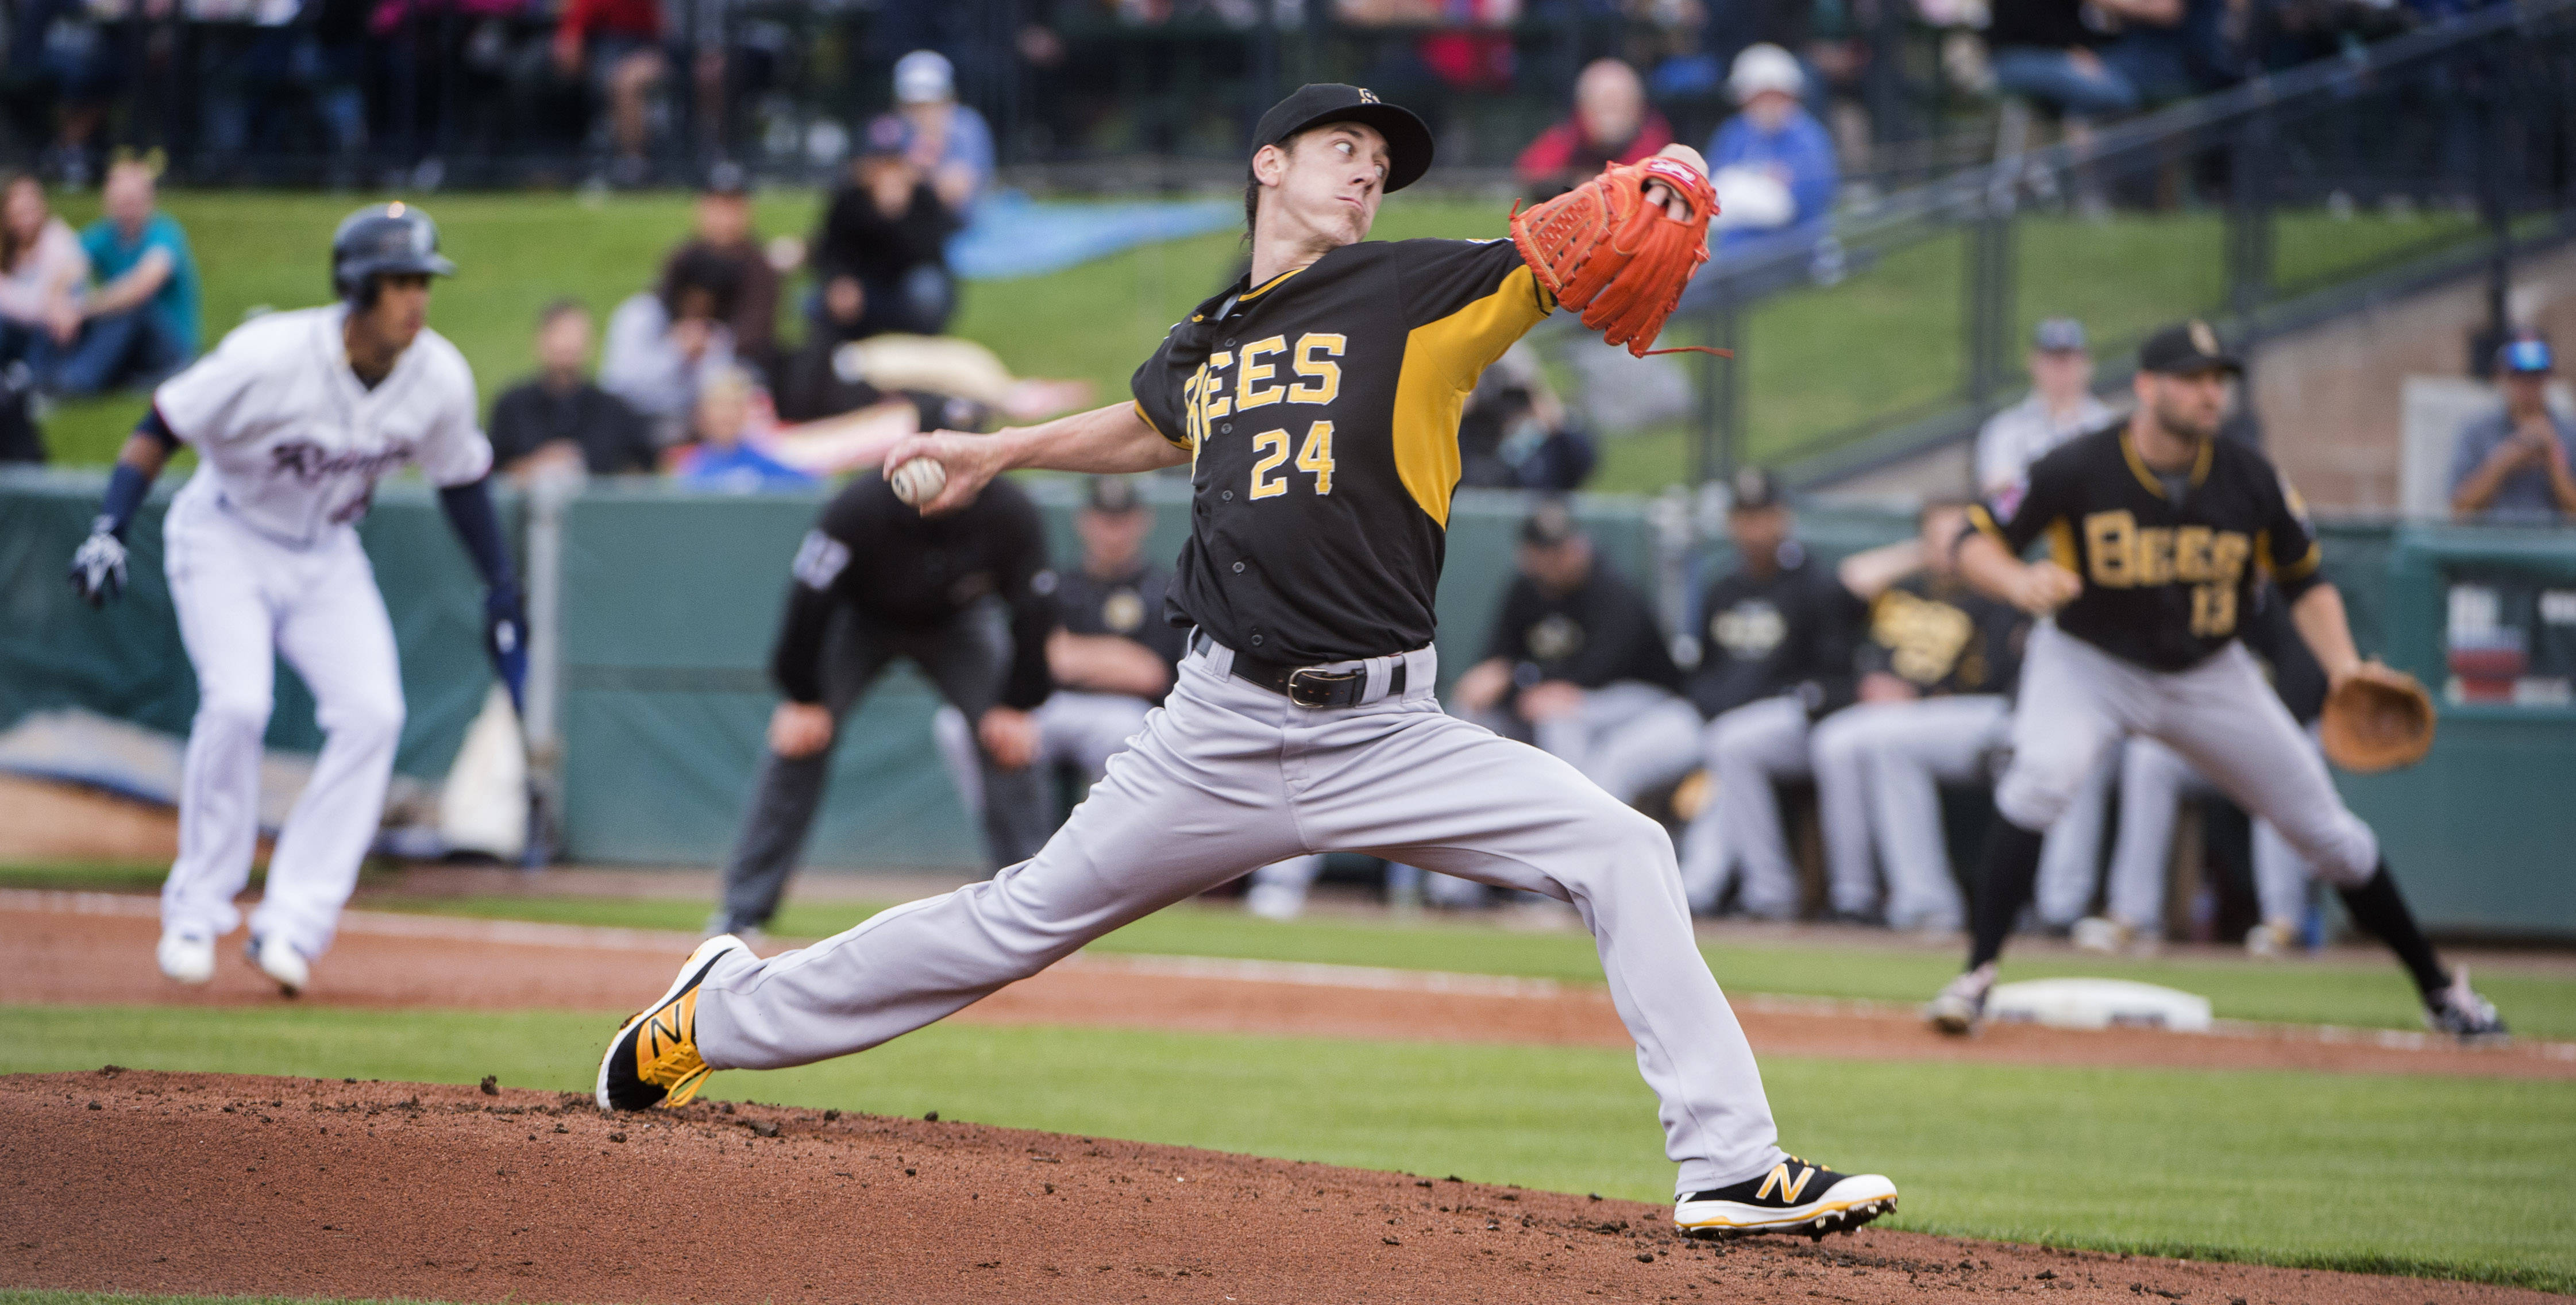 Tim Lincecum pitches for the Triple-A Salt Lake City Bees against the Tacoma Rainiers in a baseball game Thursday, June 2, 2016, in Tacoma, Wash. Lincecum, 7-4 last season with San Francisco, underwent season-ending hip surgery last September and was rele